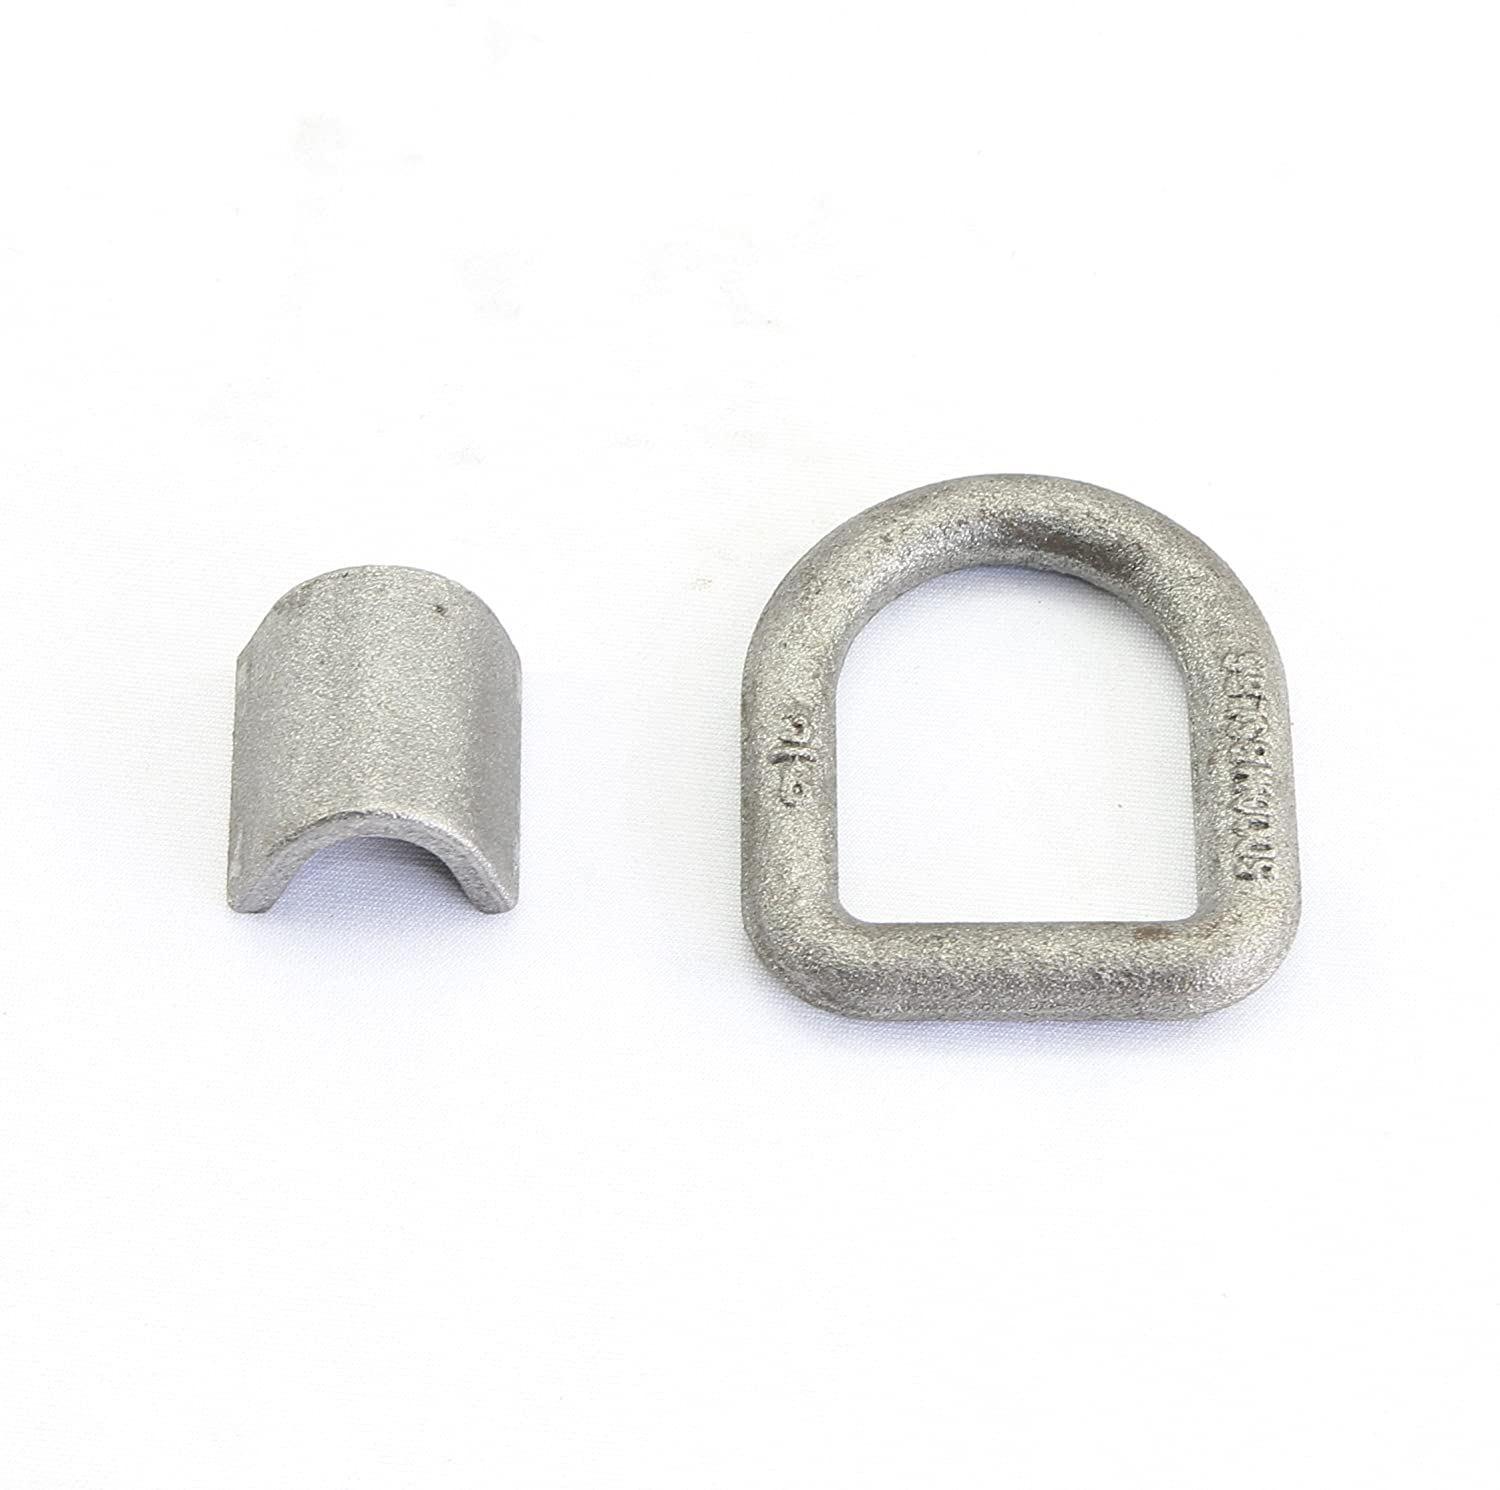 Pack of 4 3//8 5,000 Lbs Load Capacity Weld-on Forged Flip D-ring Anchor